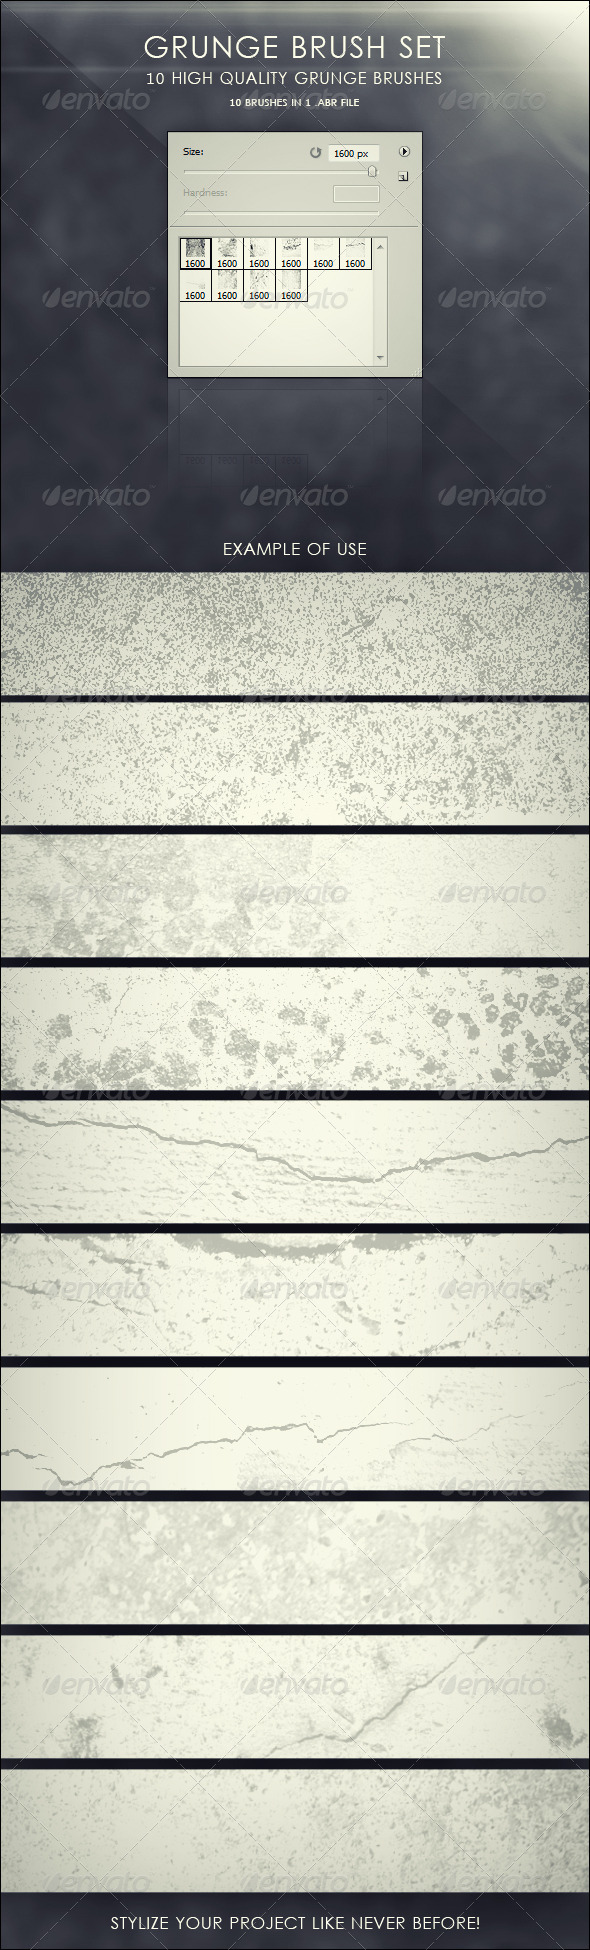 Grunge Brush Set - Grunge Brushes